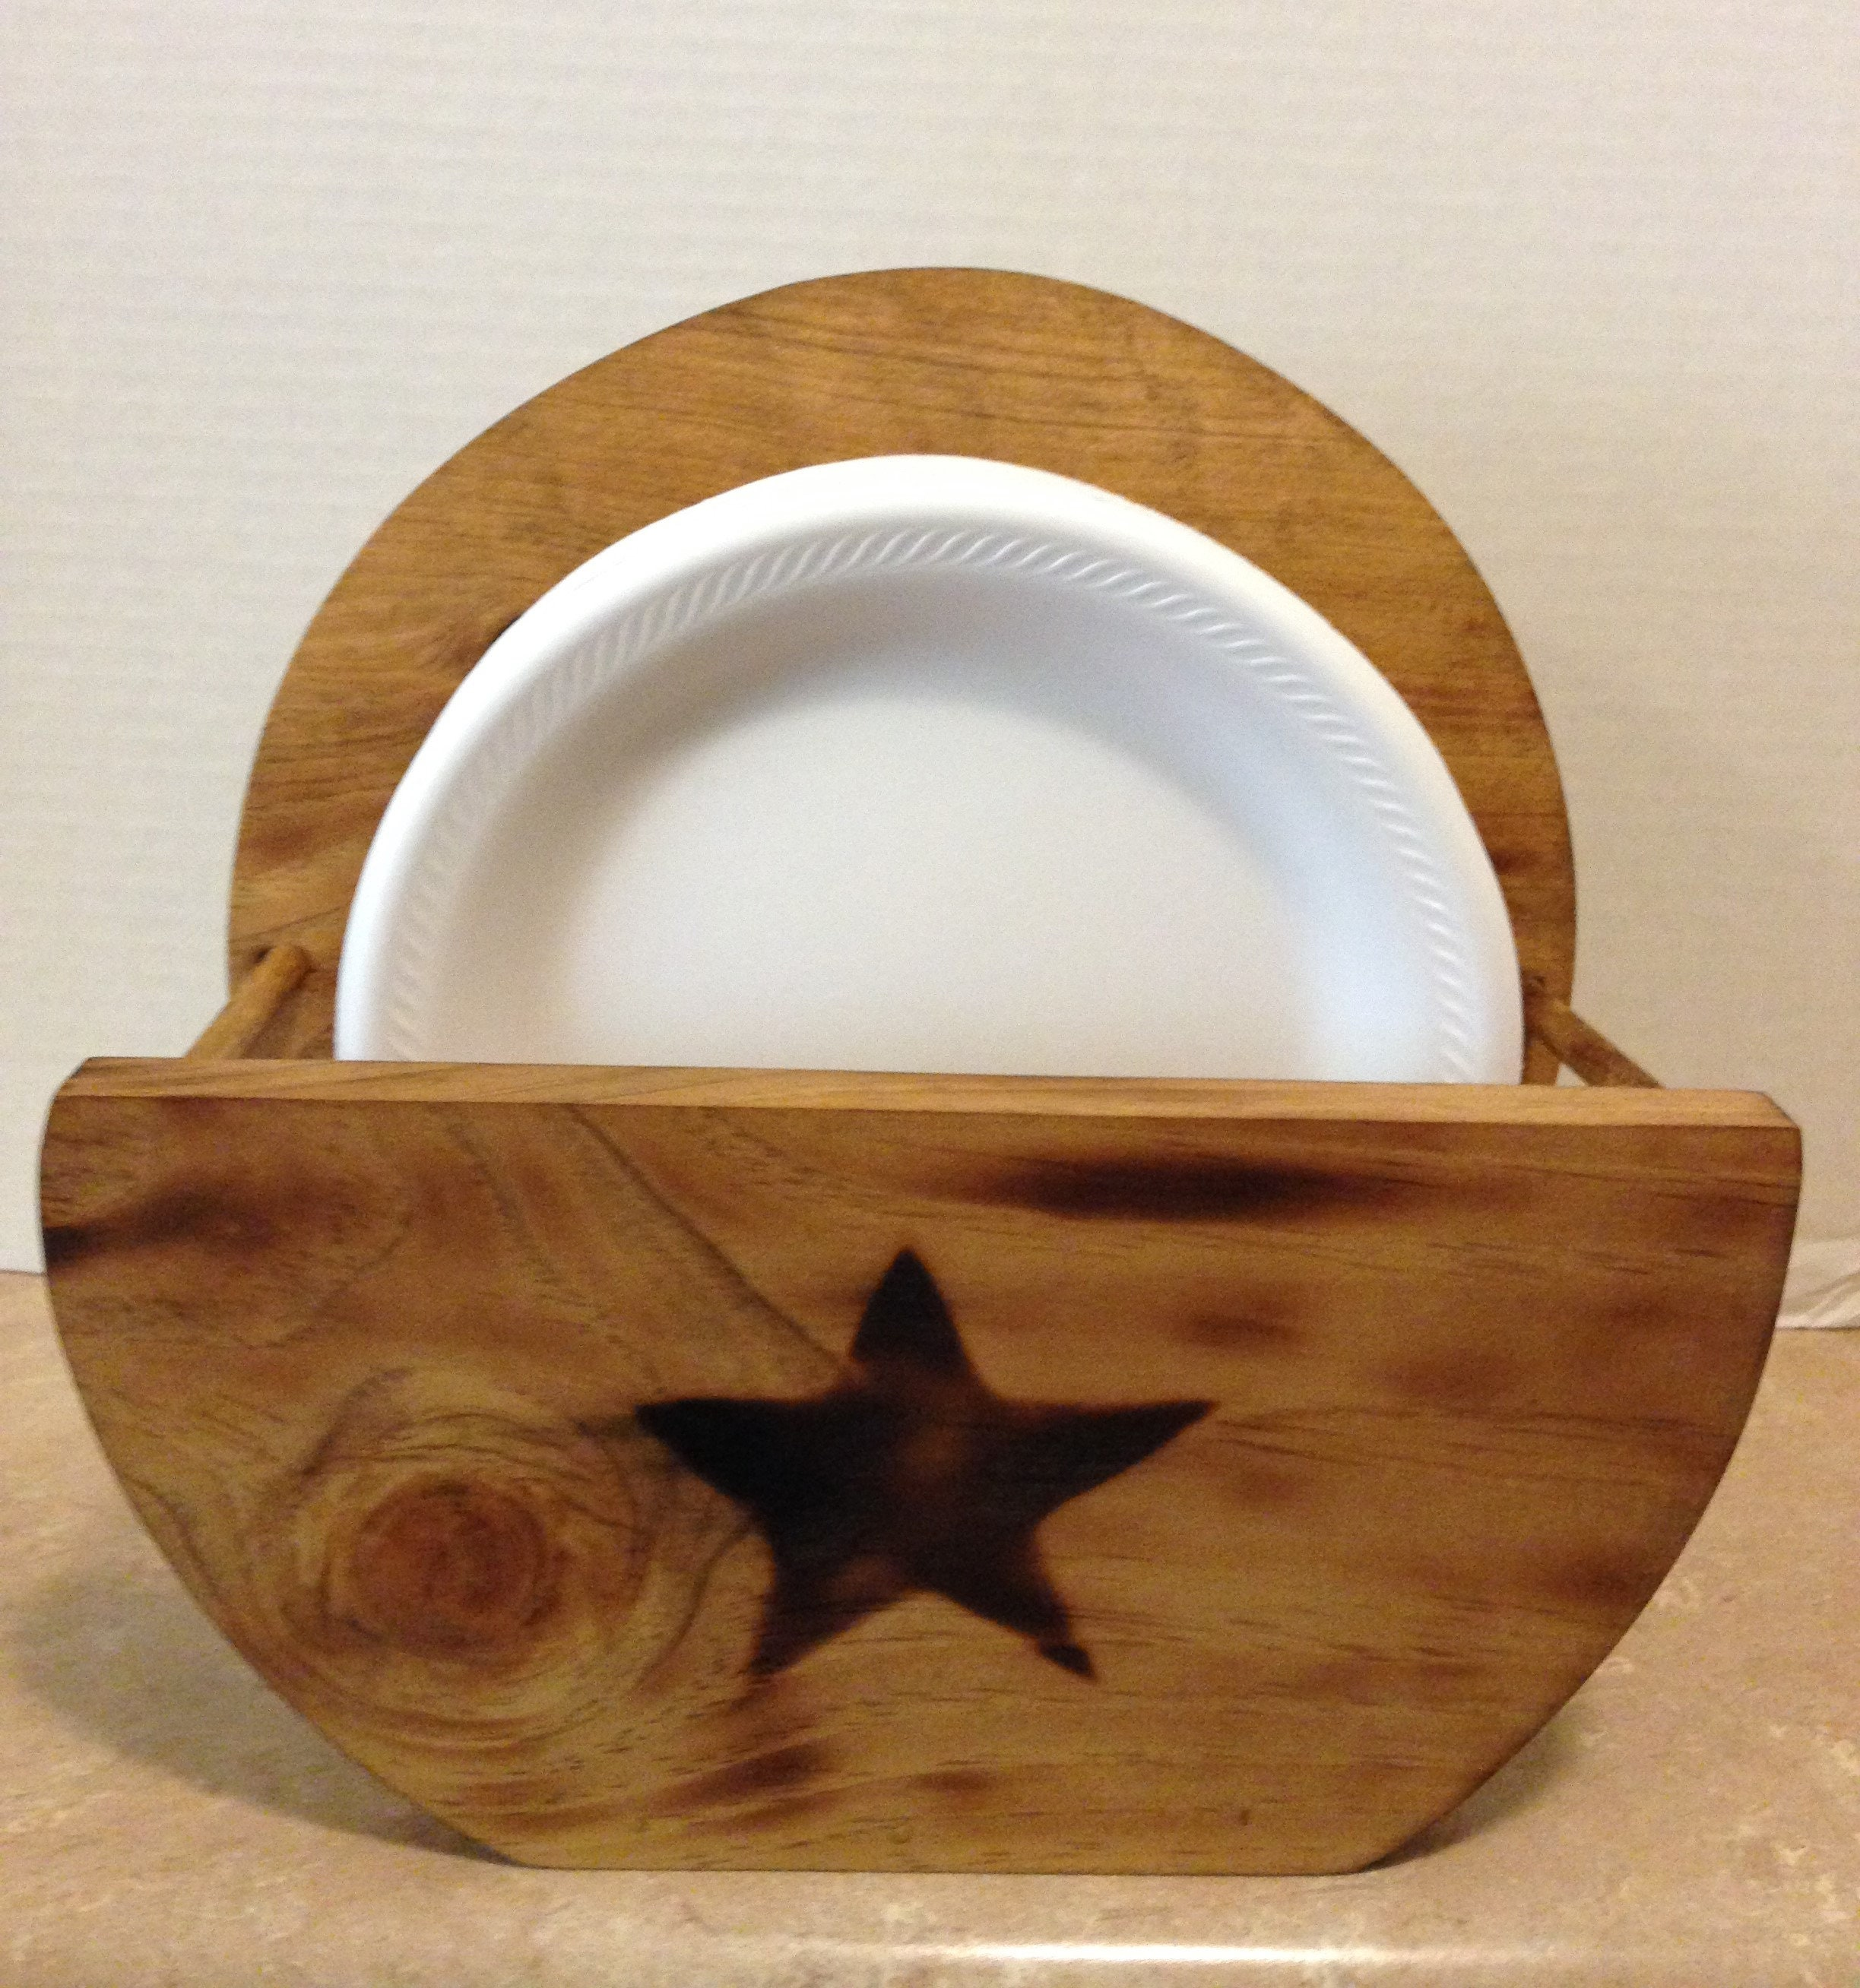 Paper Plate Holder Wooden Plate Holder Holder for plates Primitive Decor Rustic Decor Rustic Kitchen Primitive Kitchen Primitive star : wooden paper plate holders - pezcame.com